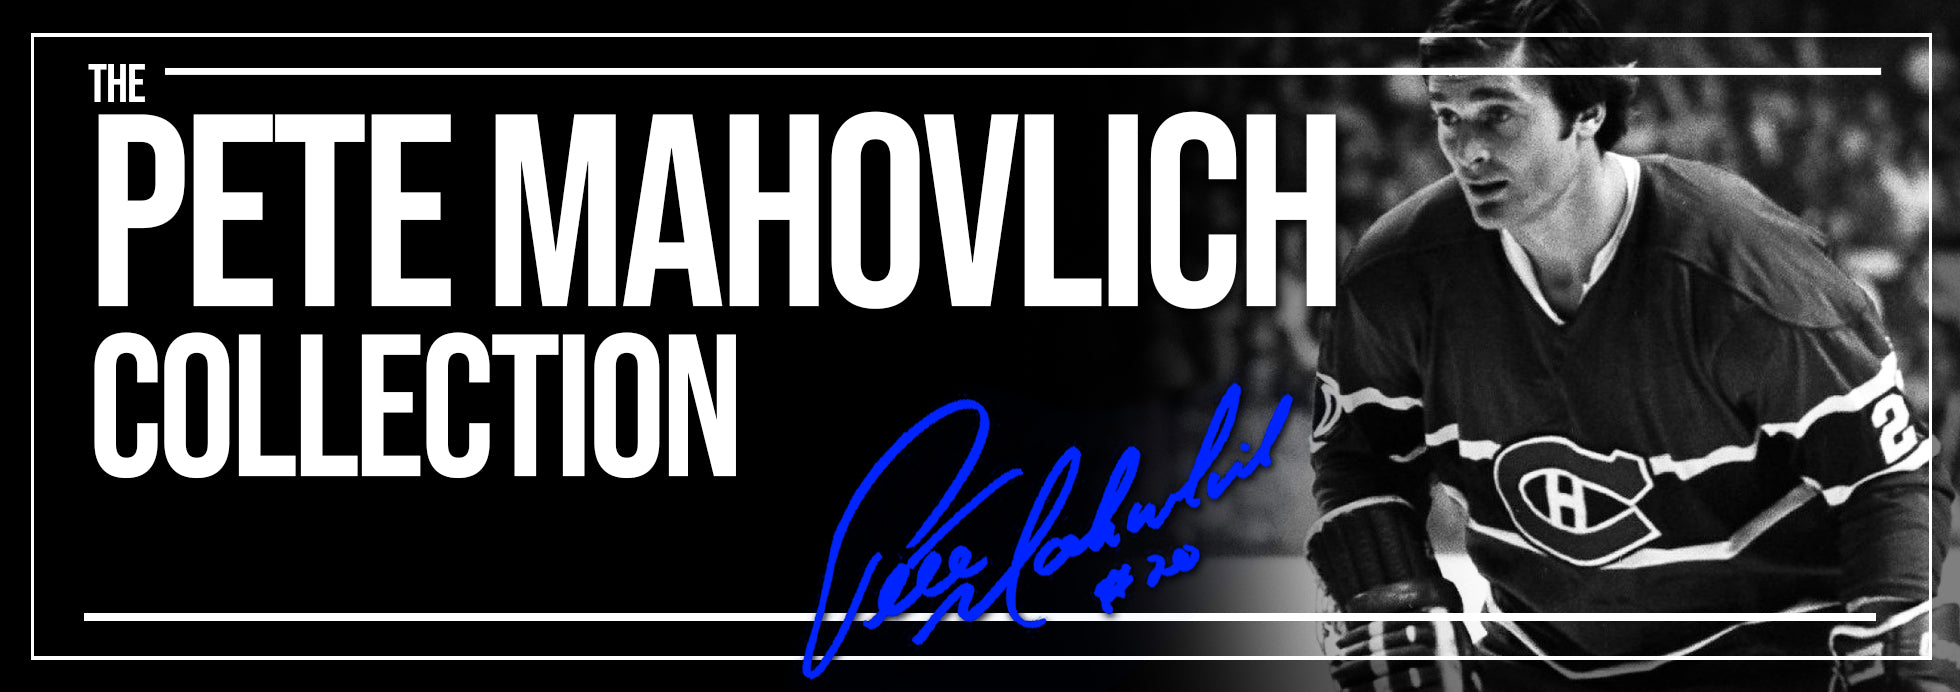 Peter Mahovlich Collection Banner